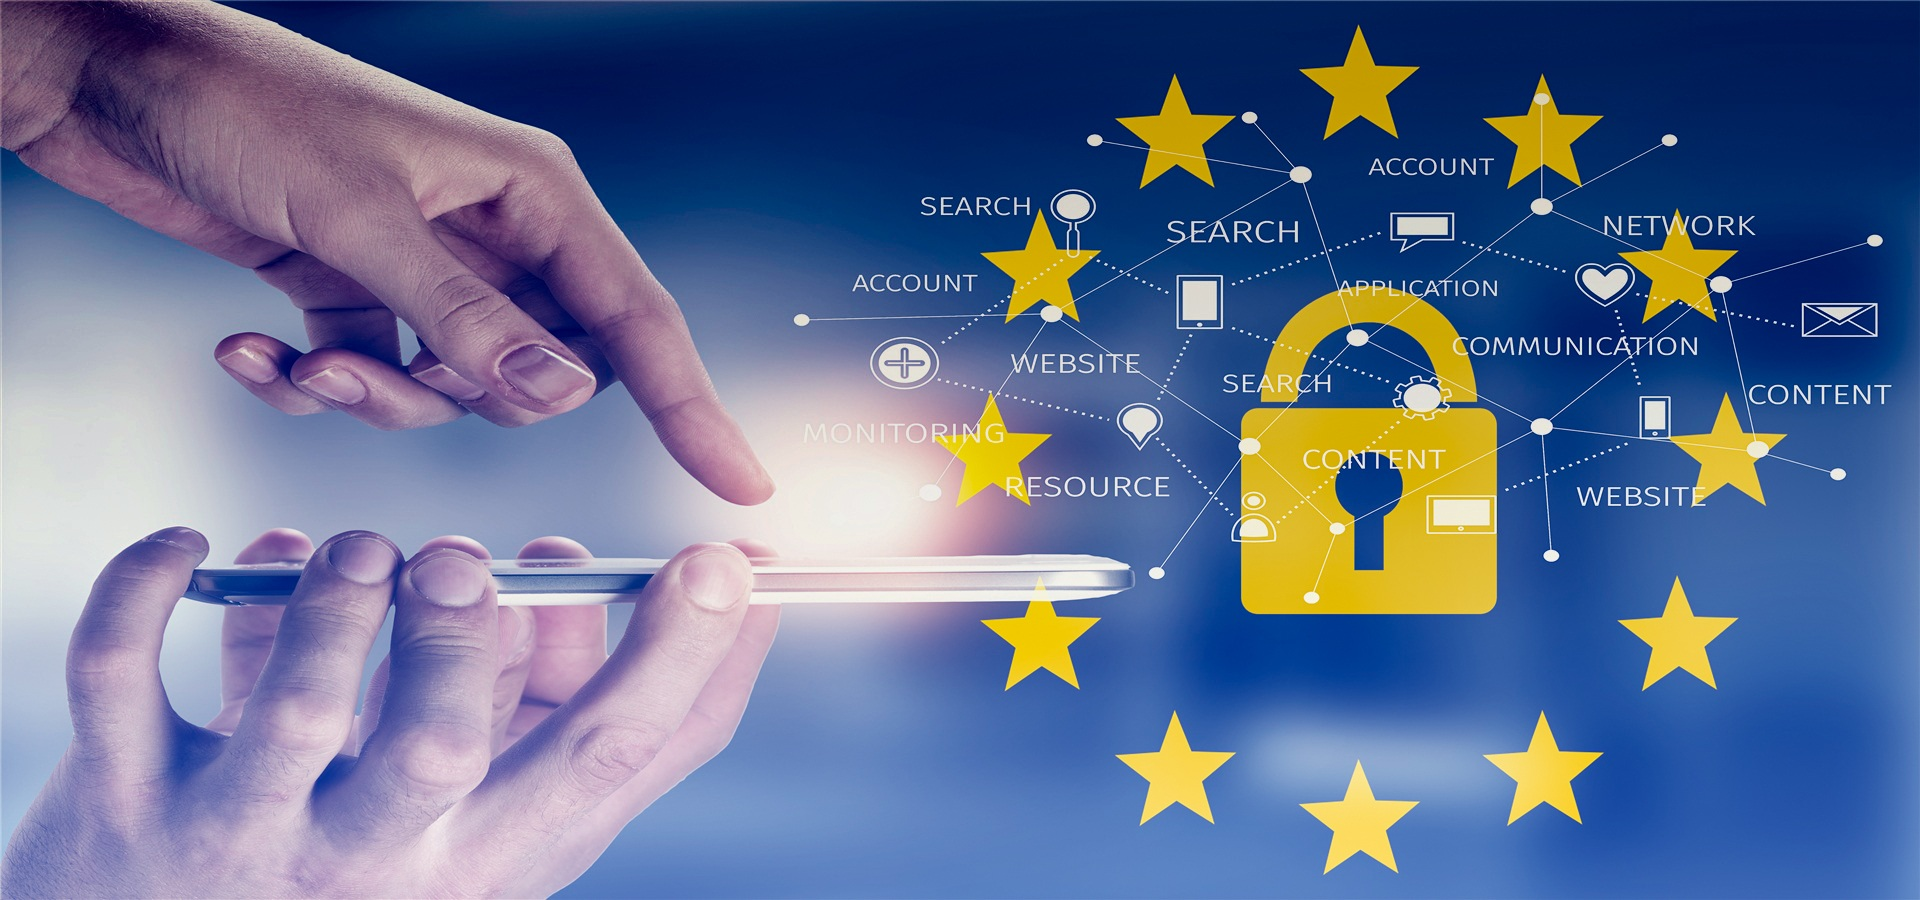 Webinar Replay: Is Your Data Secure?